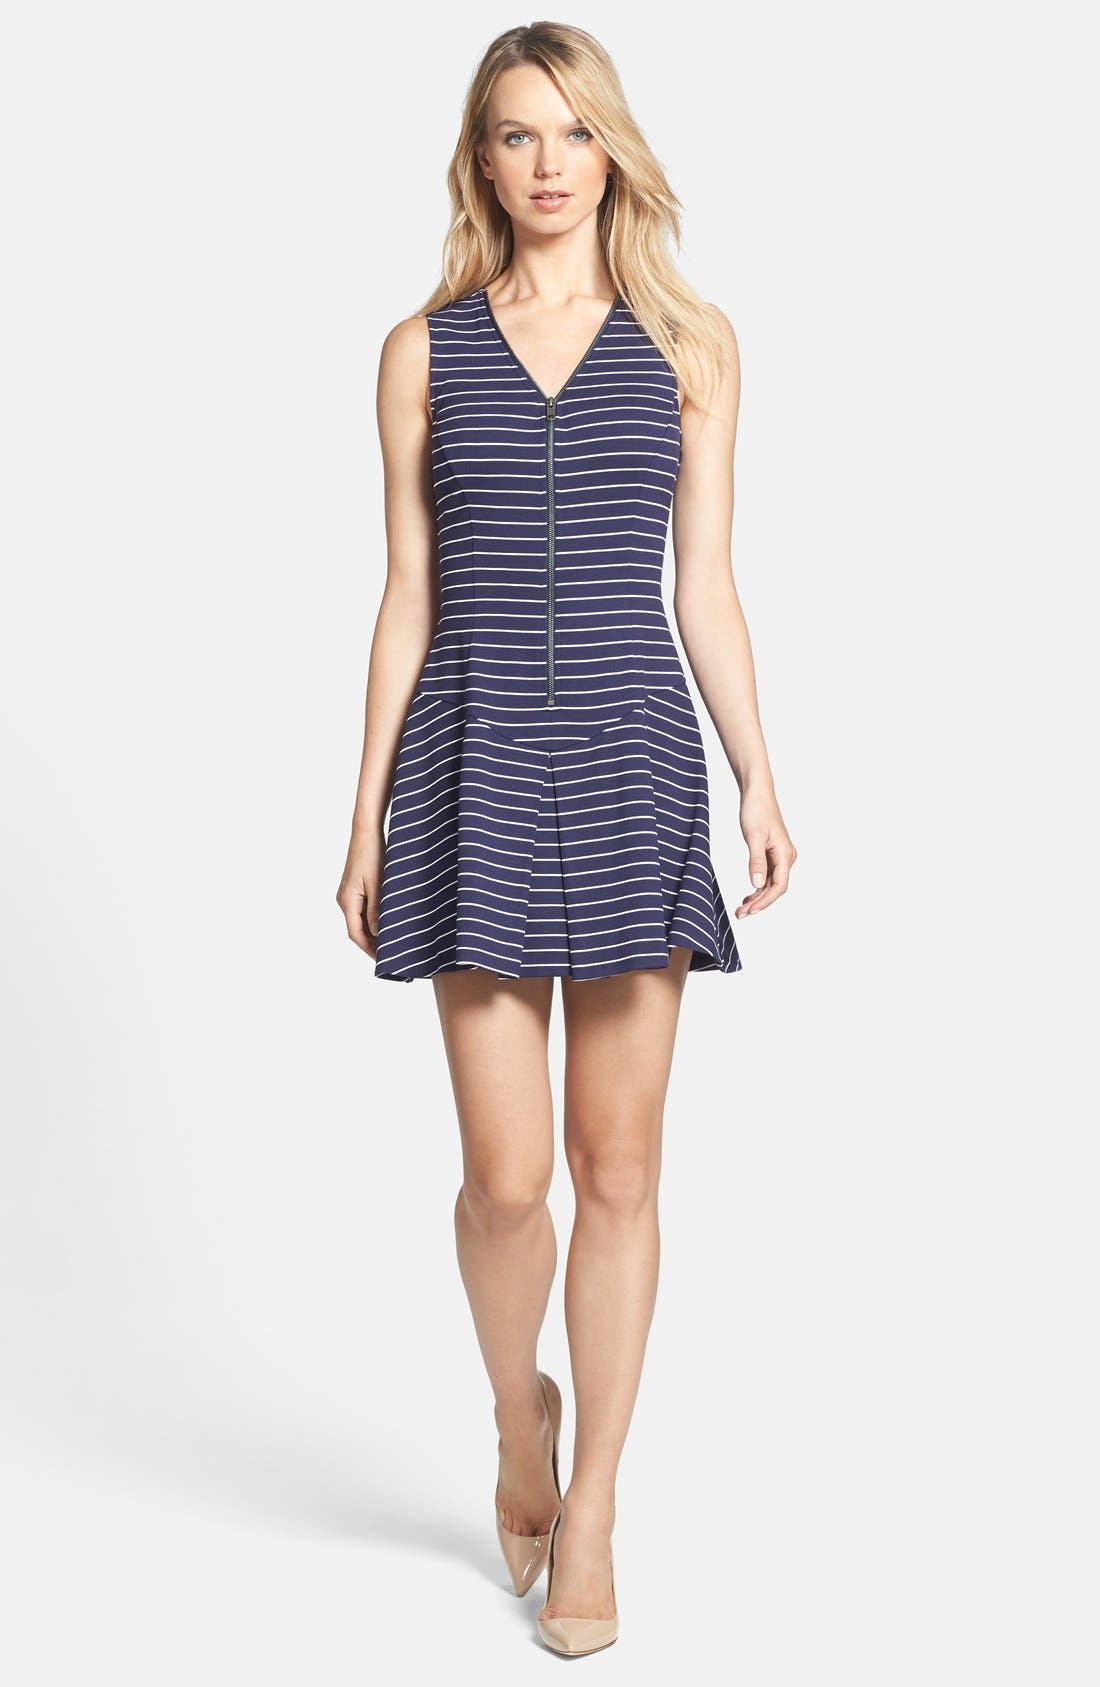 Alternate Image 1 Selected - Theory 'Sayidres' Knit Fit & Flare Dress